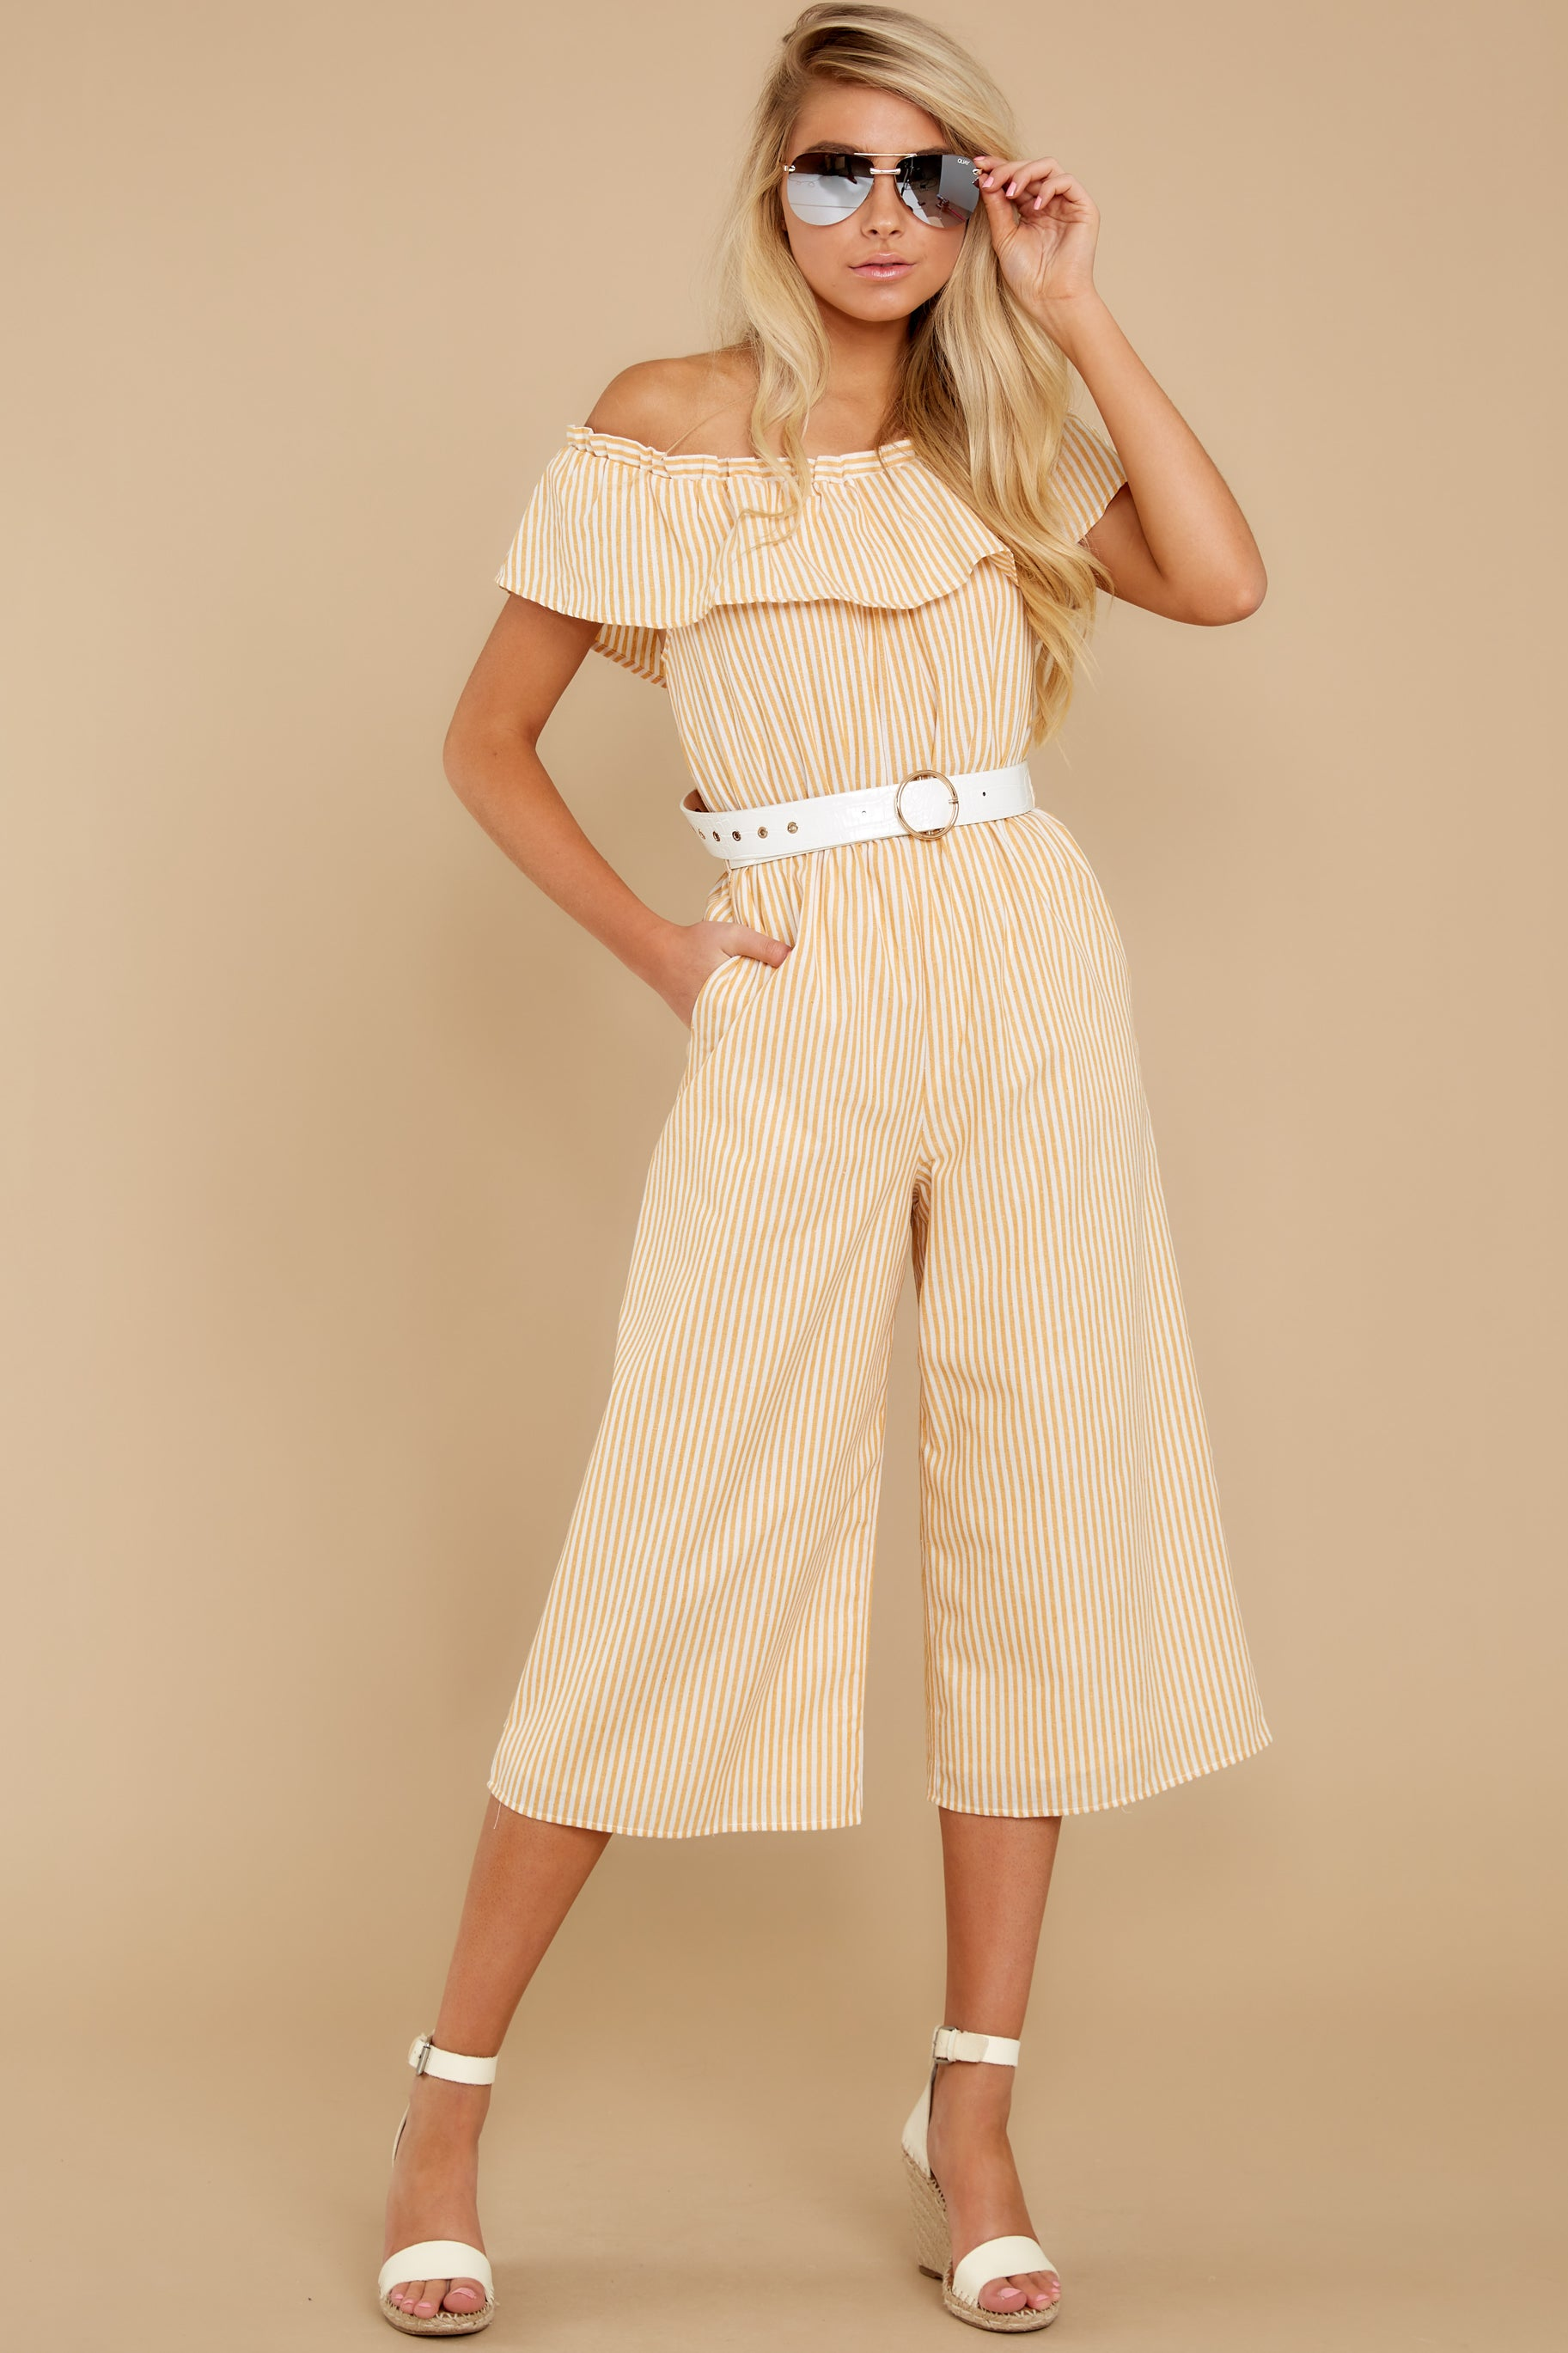 Vintage Rompers, Playsuits | Retro, Pin Up, Rockabilly Playsuits Everly Broad Daylight Yellow Stripe Jumpsuit $24.00 AT vintagedancer.com